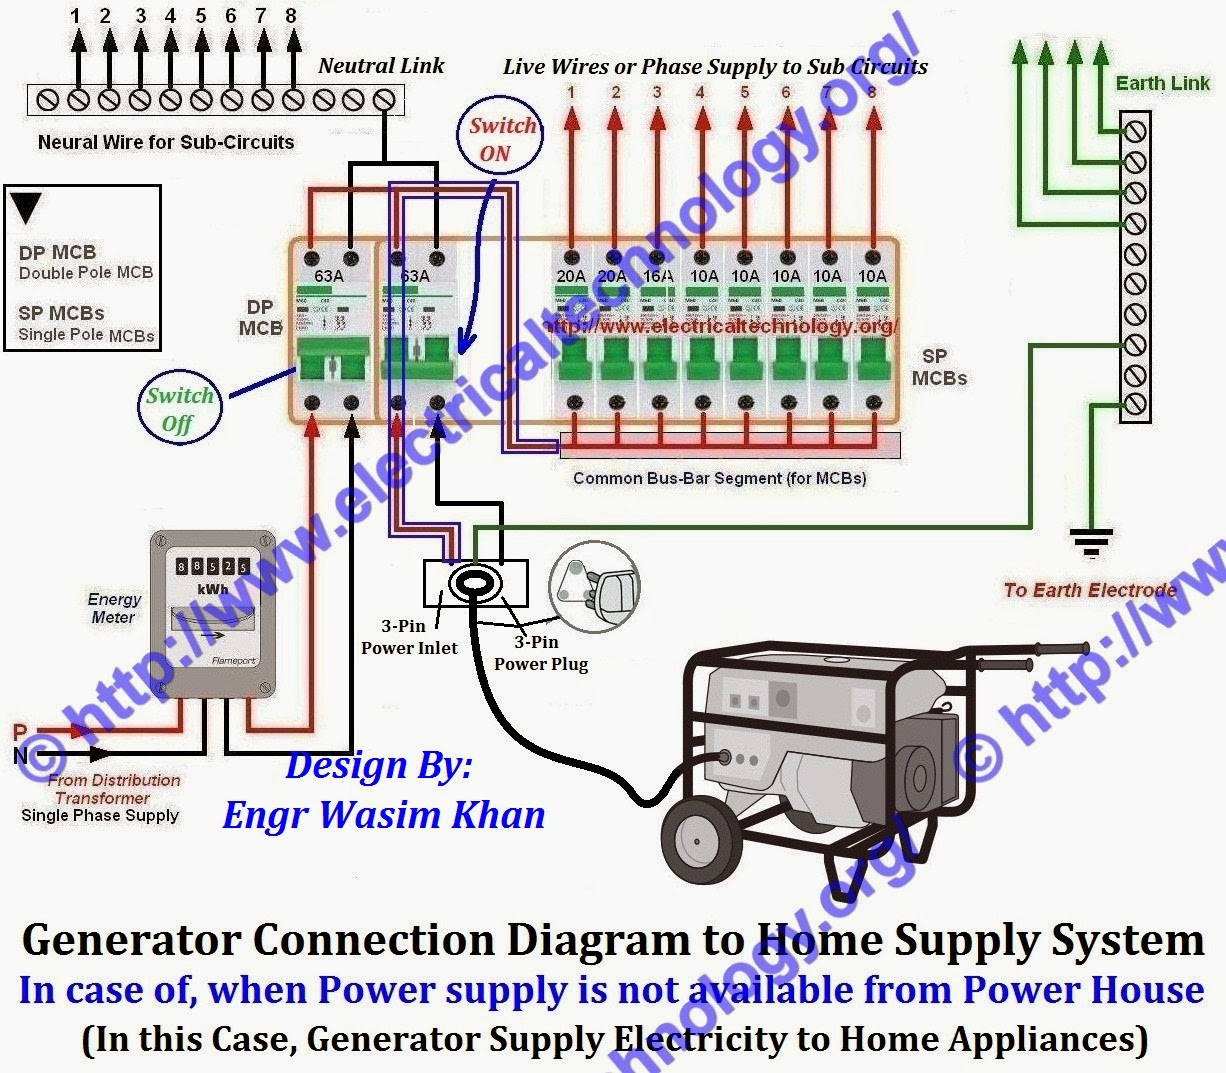 Generator Connection Diagram to Home Supply (With Separate